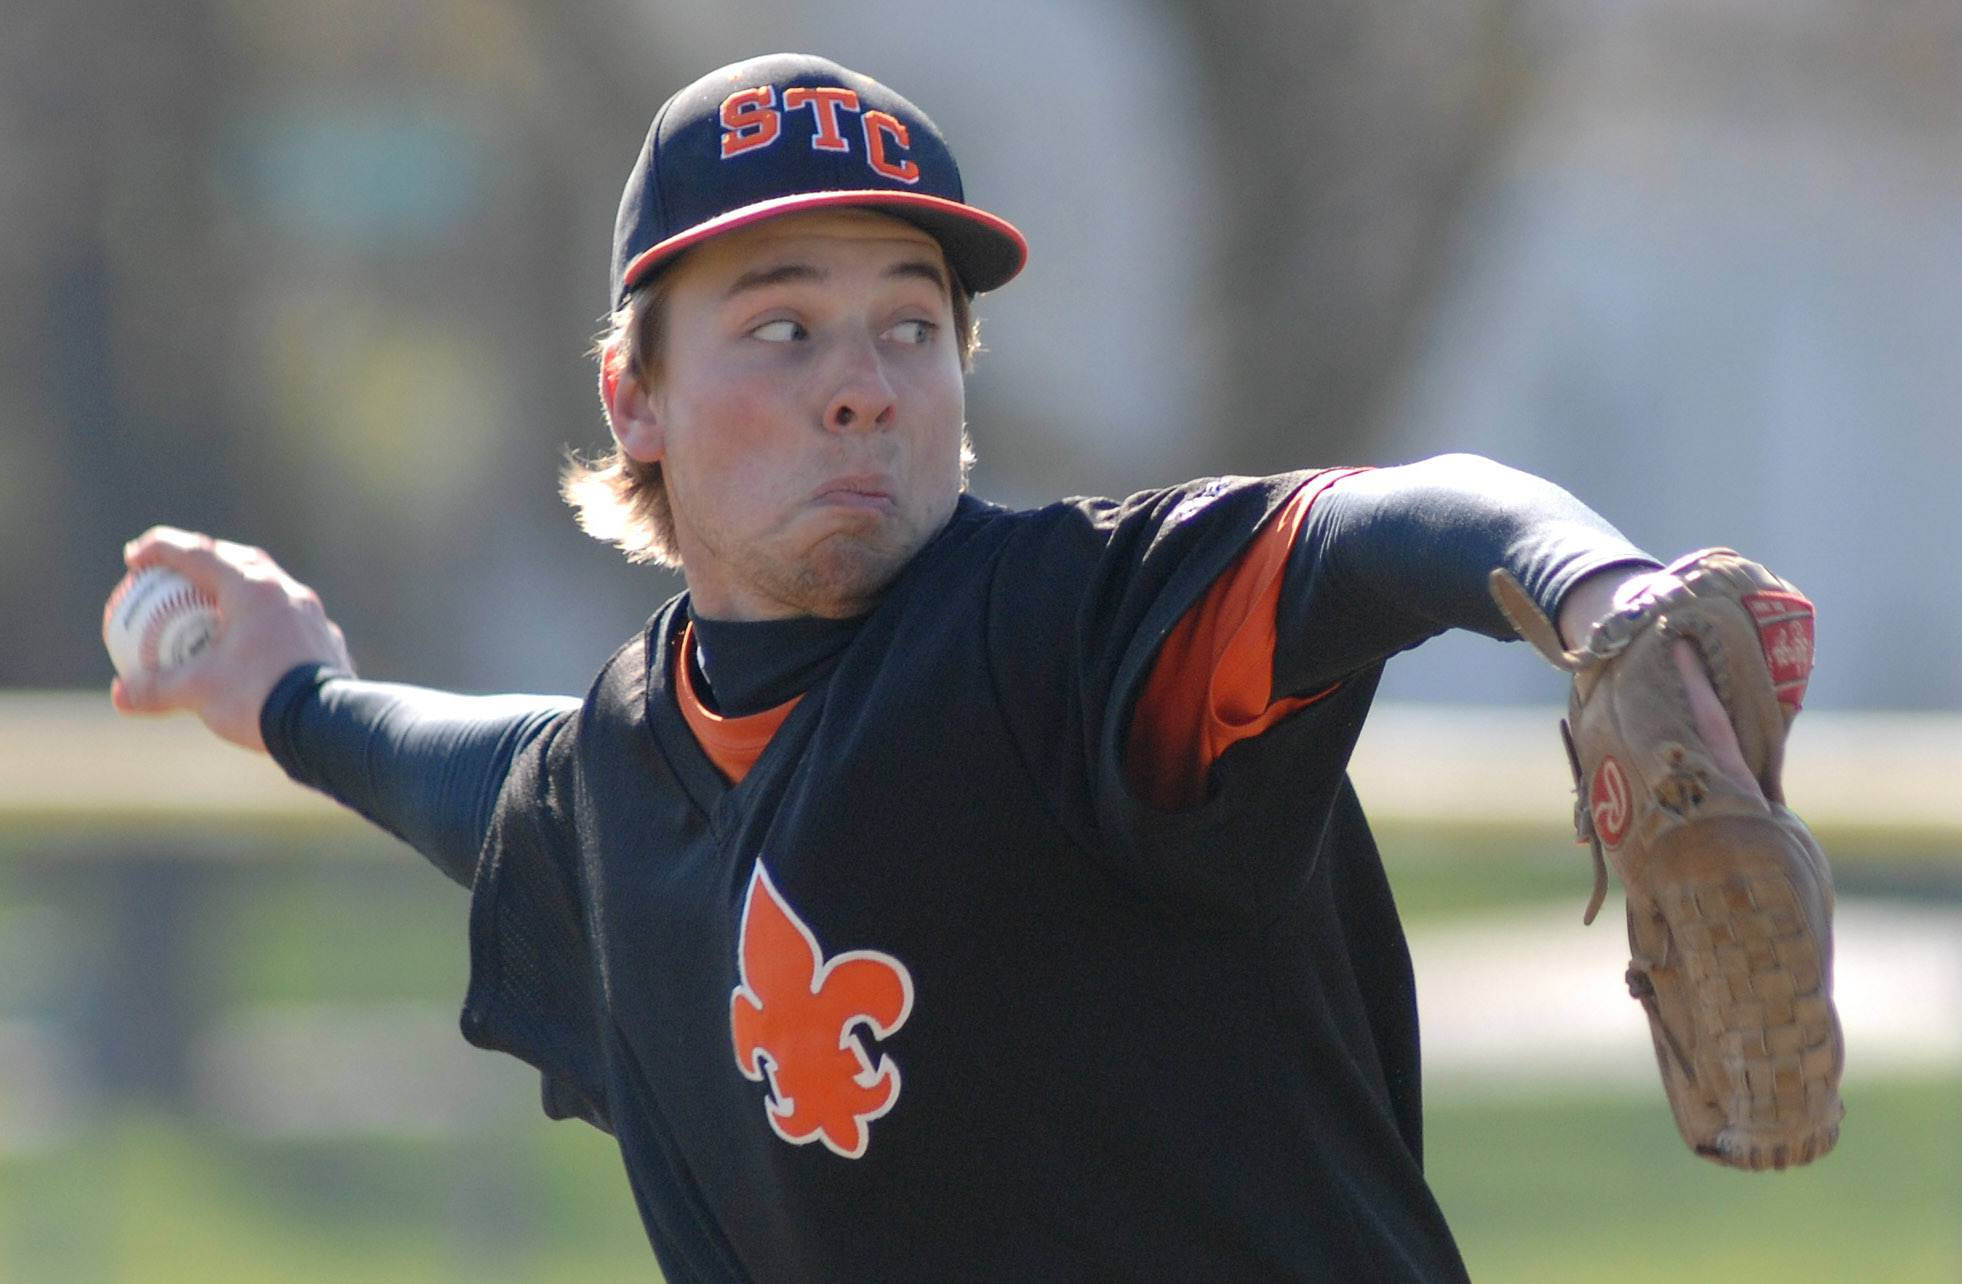 St. Charles East pitcher Mike Boehmer pitches to Geneva on Saturday, May 3.